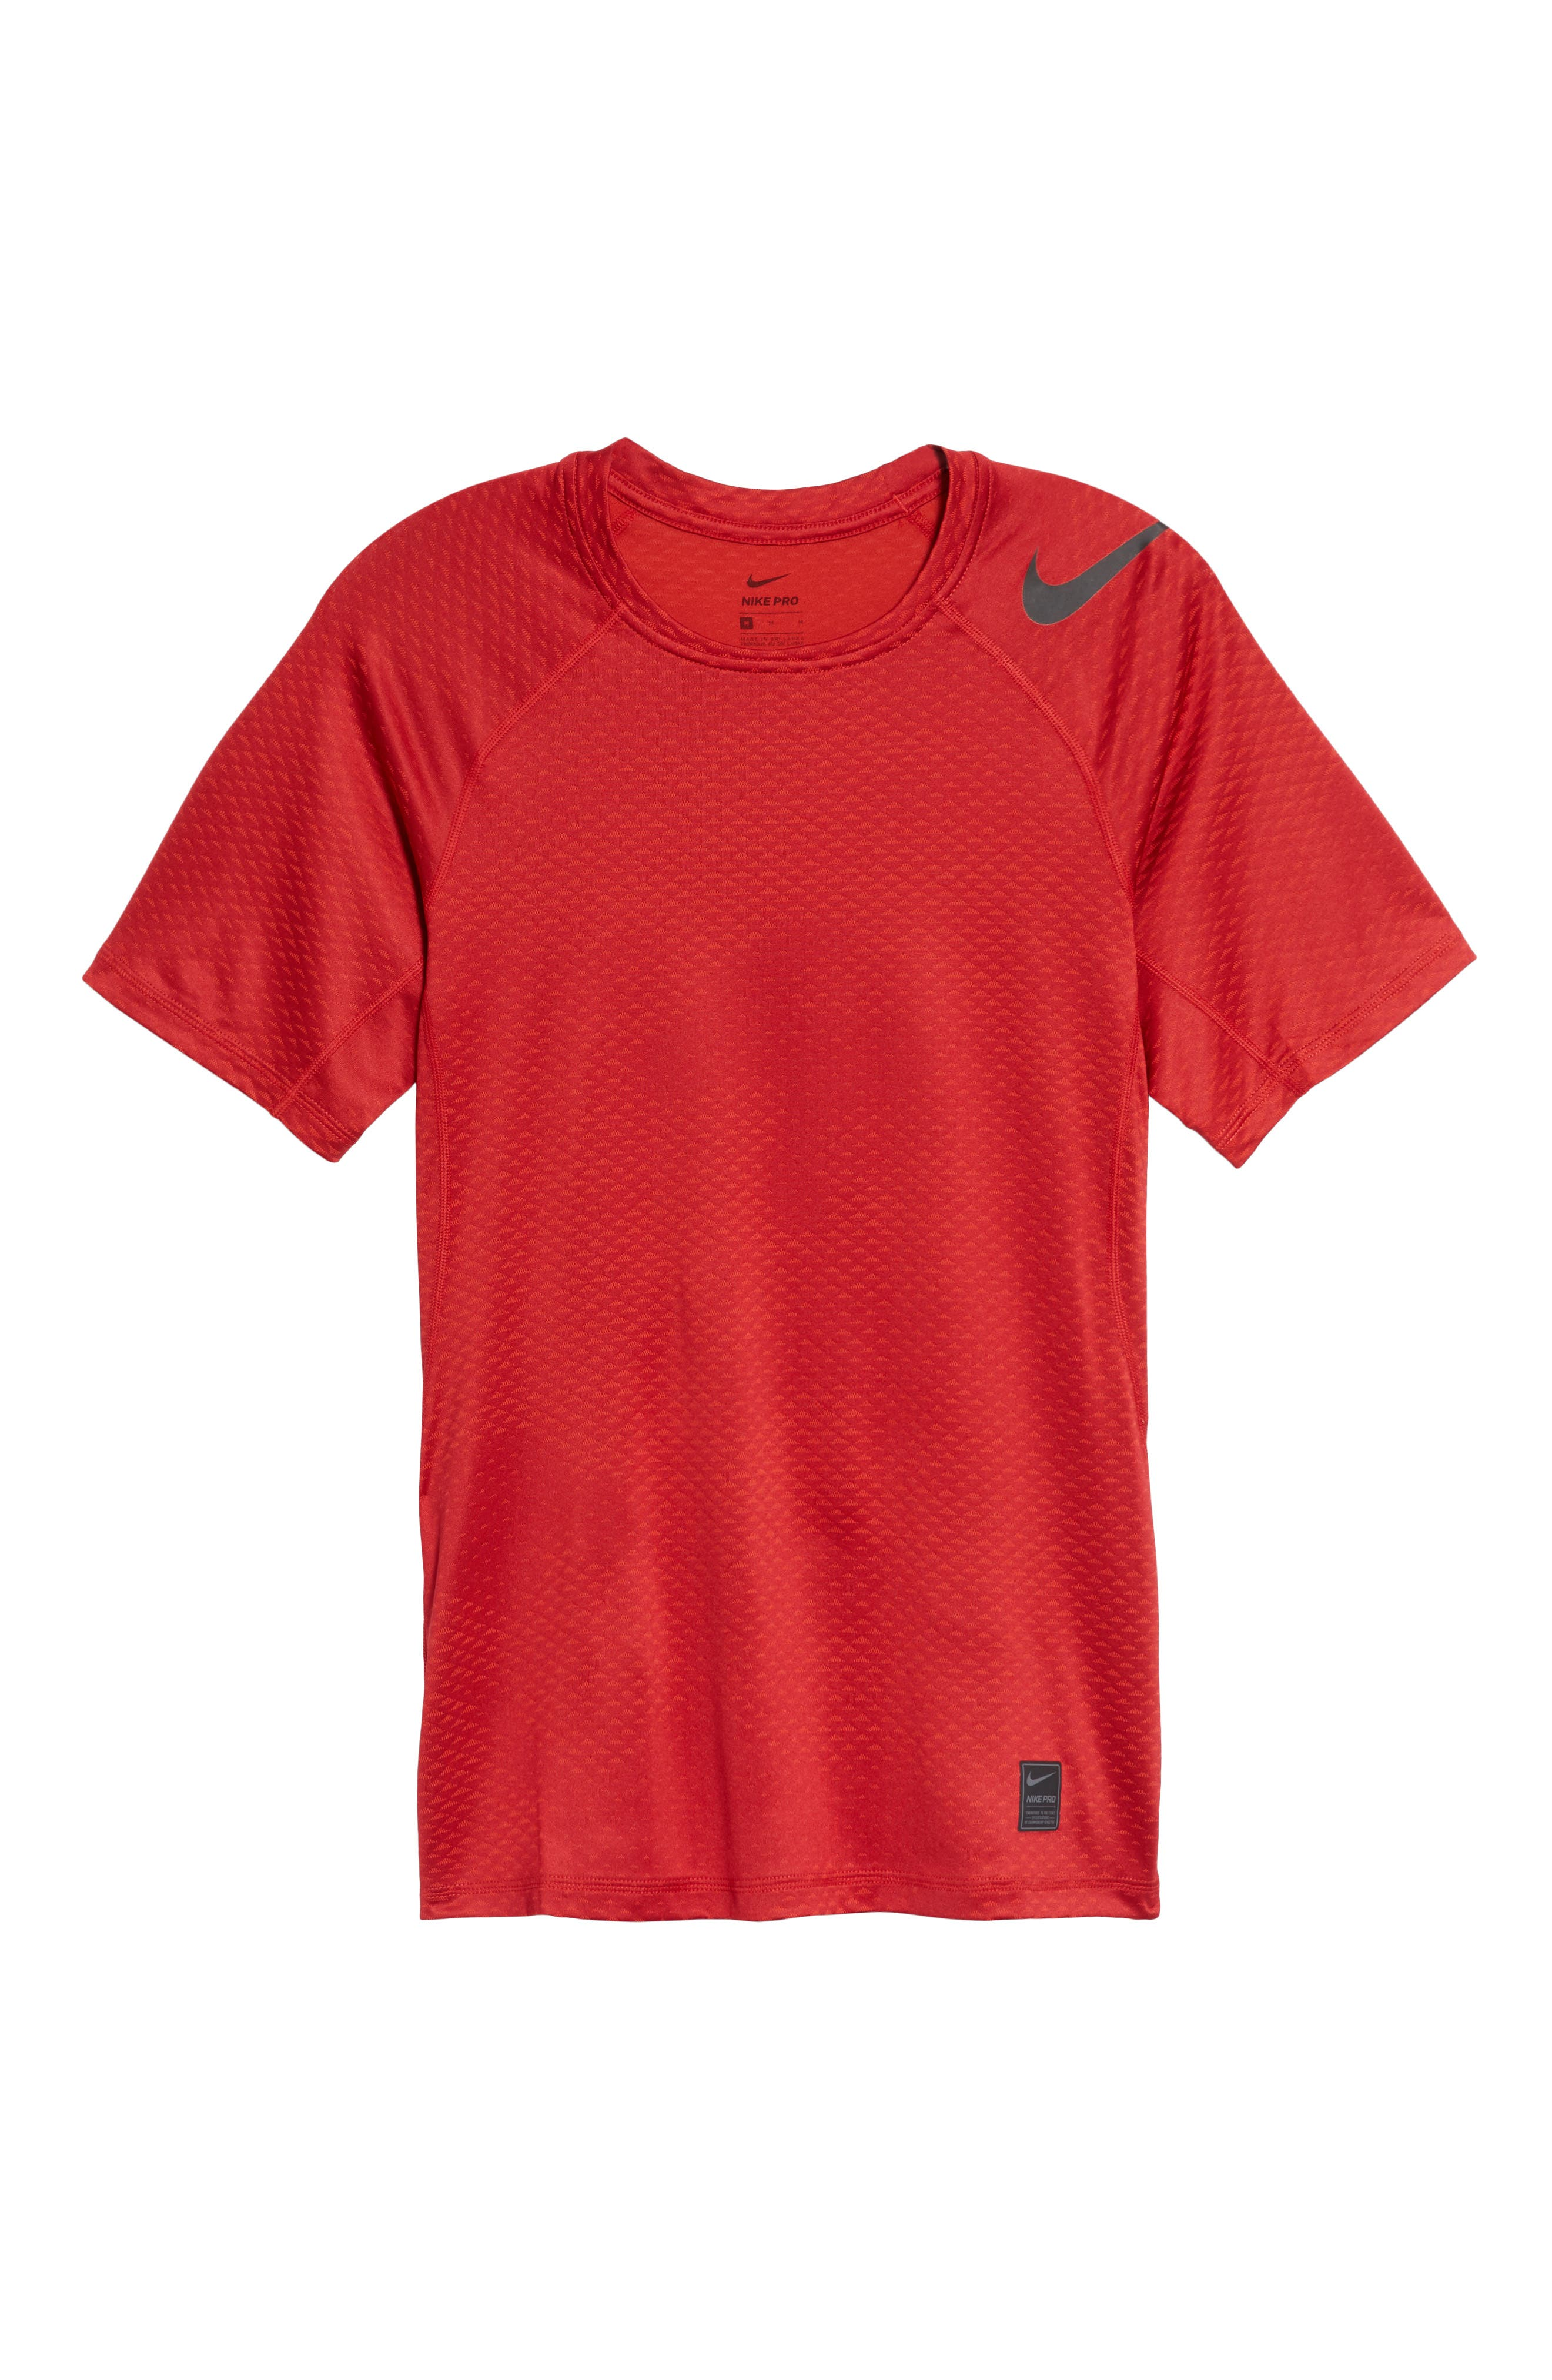 Pro HyperCool Fitted Crewneck T-Shirt,                             Alternate thumbnail 18, color,